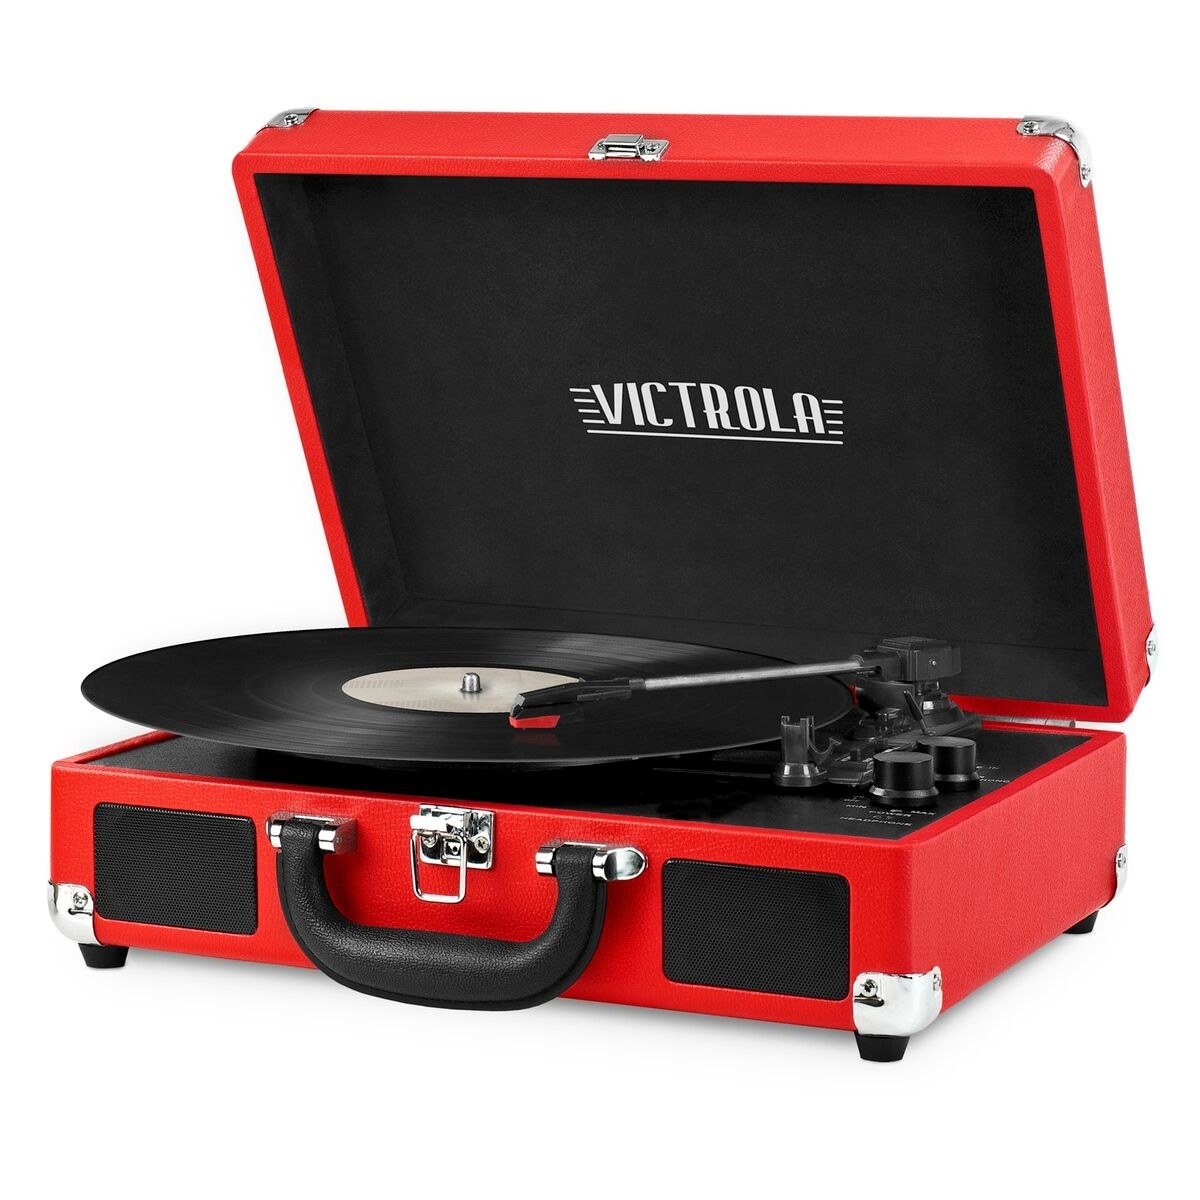 The red Victrola Bluetooth record player